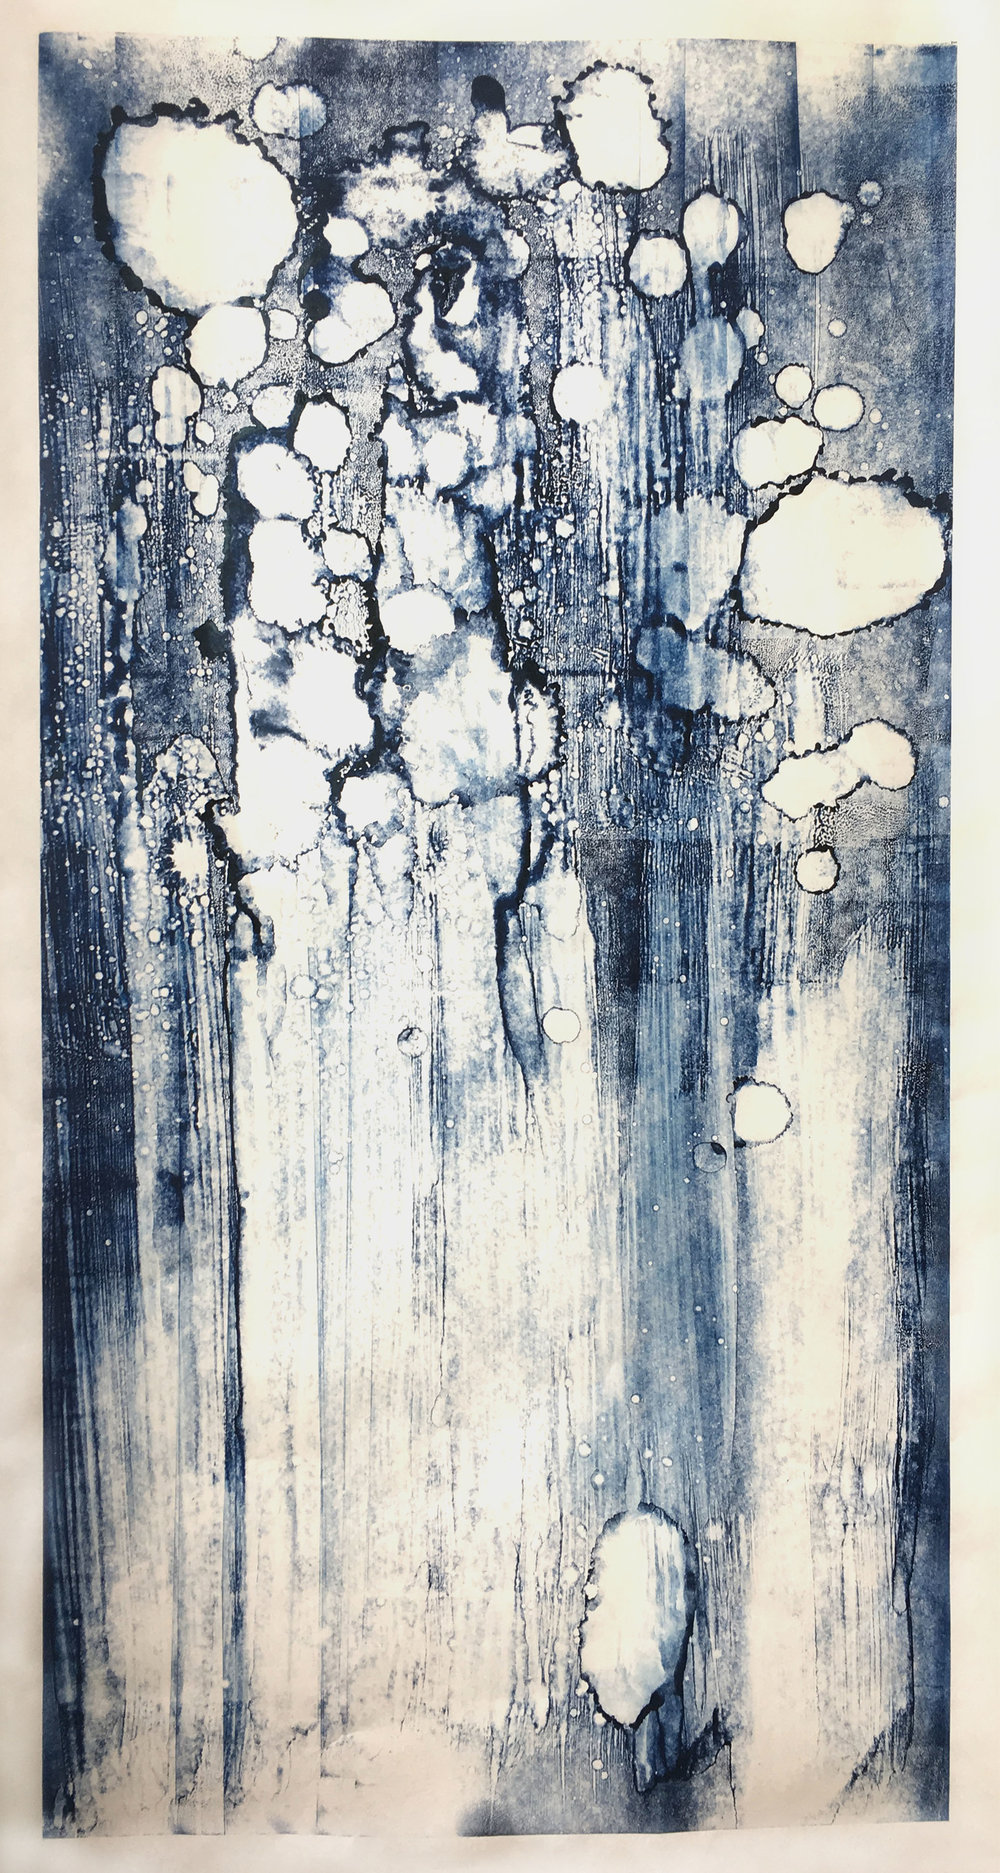 Monoprint, Oil Ink on Mulberry Paper, 2017